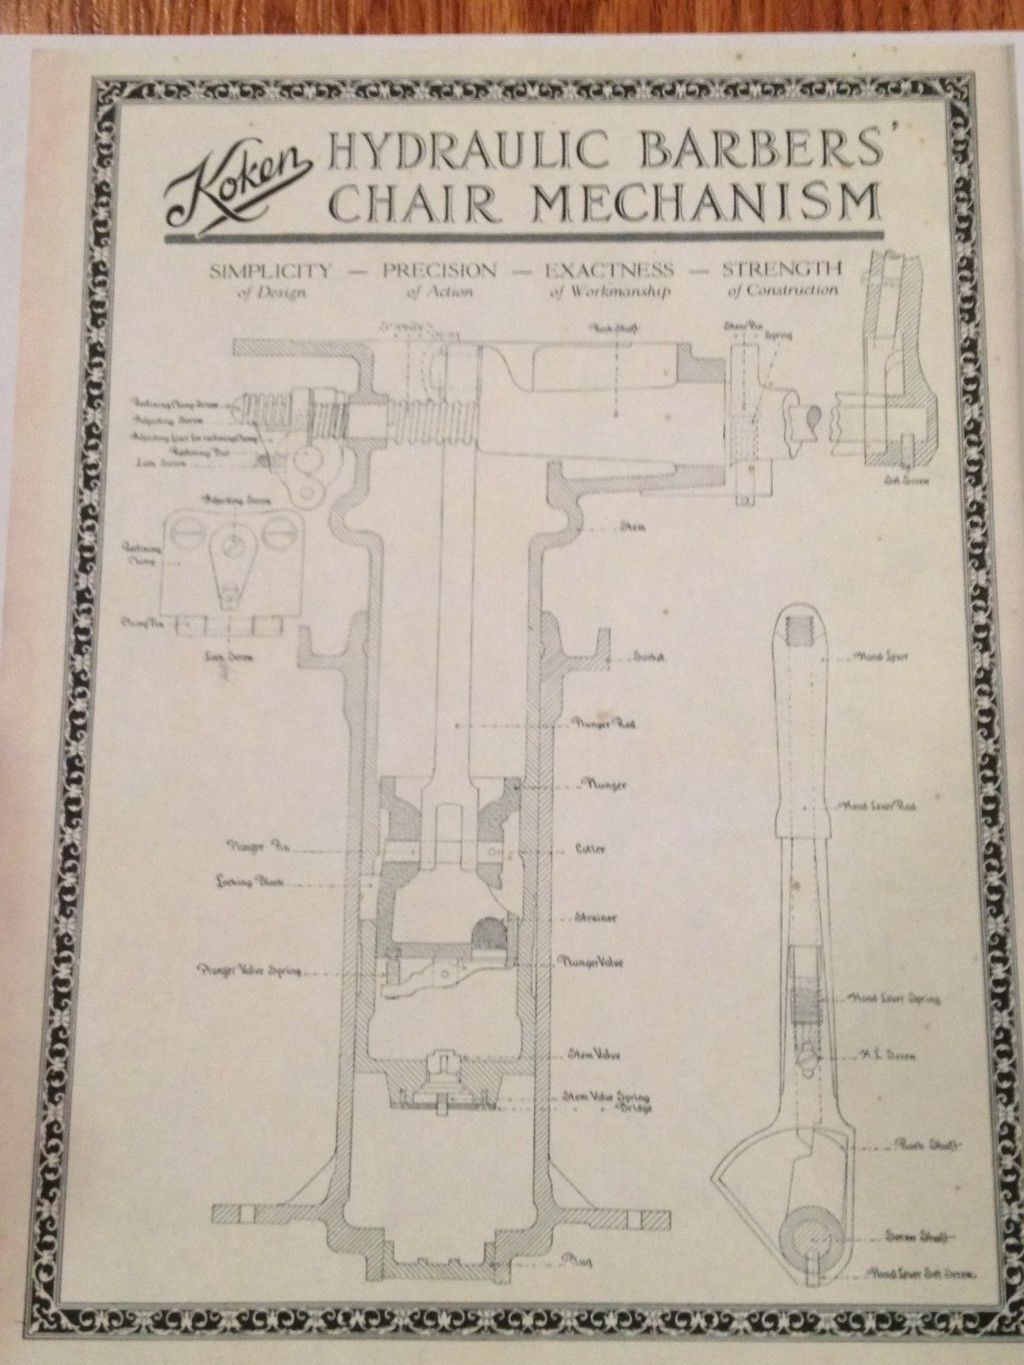 barber shave diagram ford 2n wiring antique koken chair hydraulic schematic